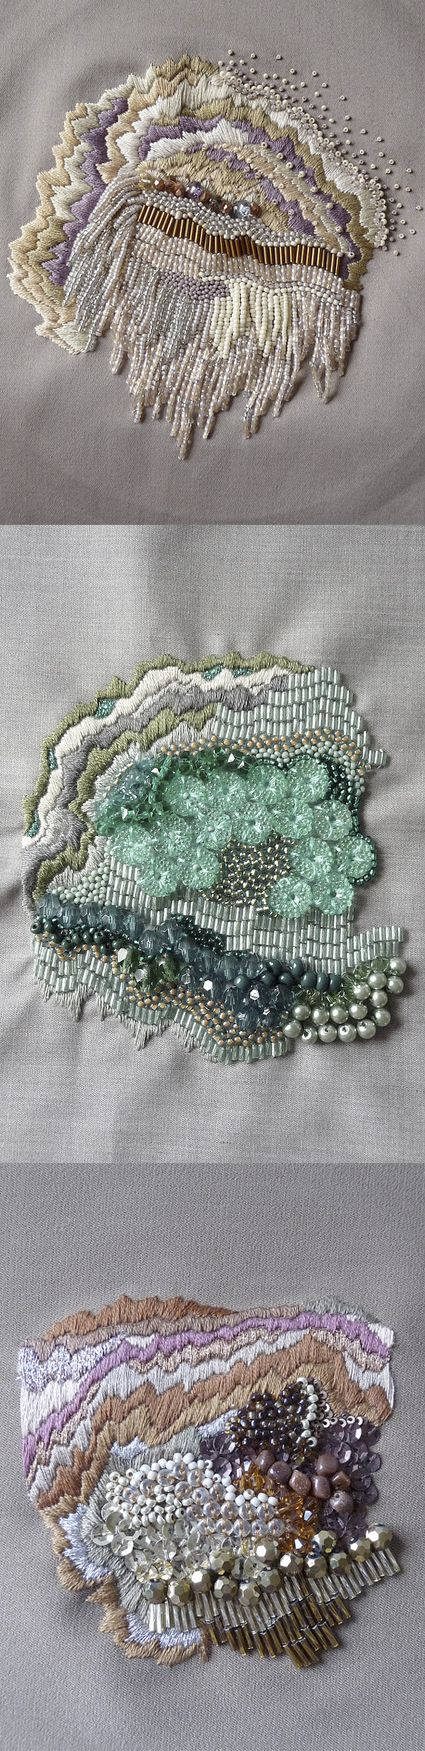 Anna Jane Searle. Embroidery Art.